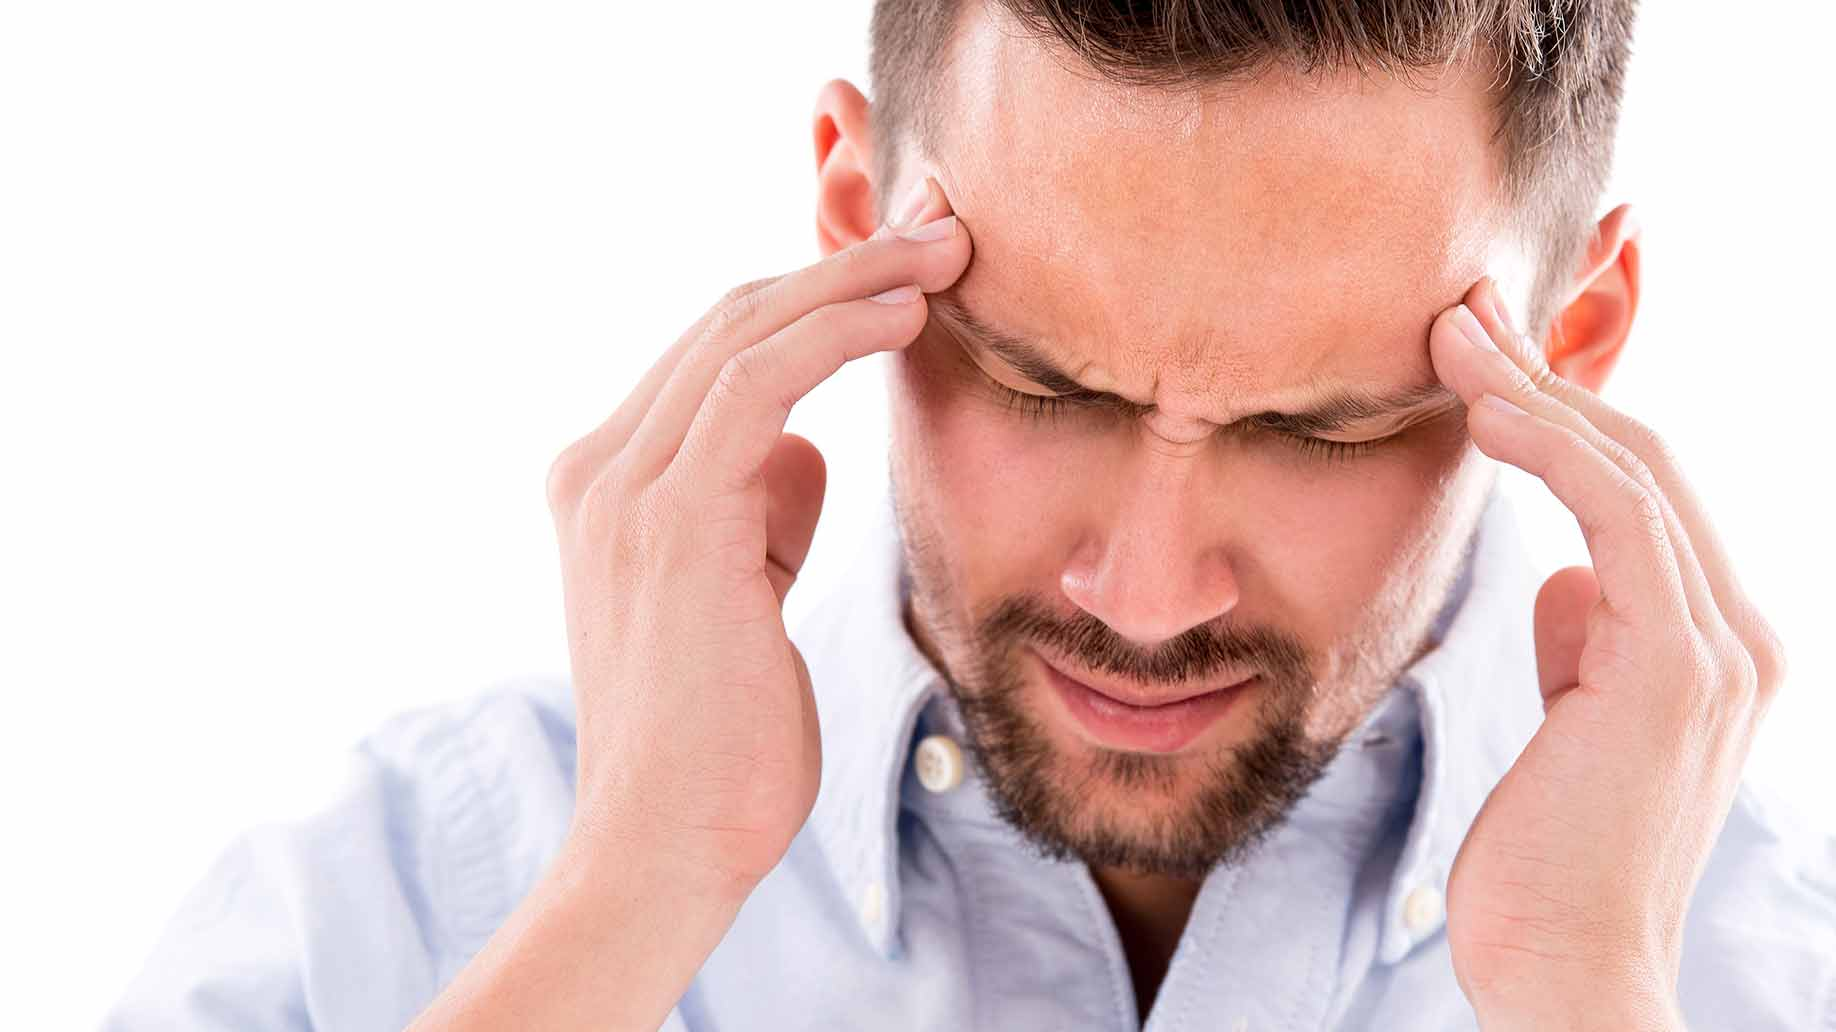 13 Quick Home Remedies for Headache, Sinus Pressure, Migraine Get Relief With In 2 minutes